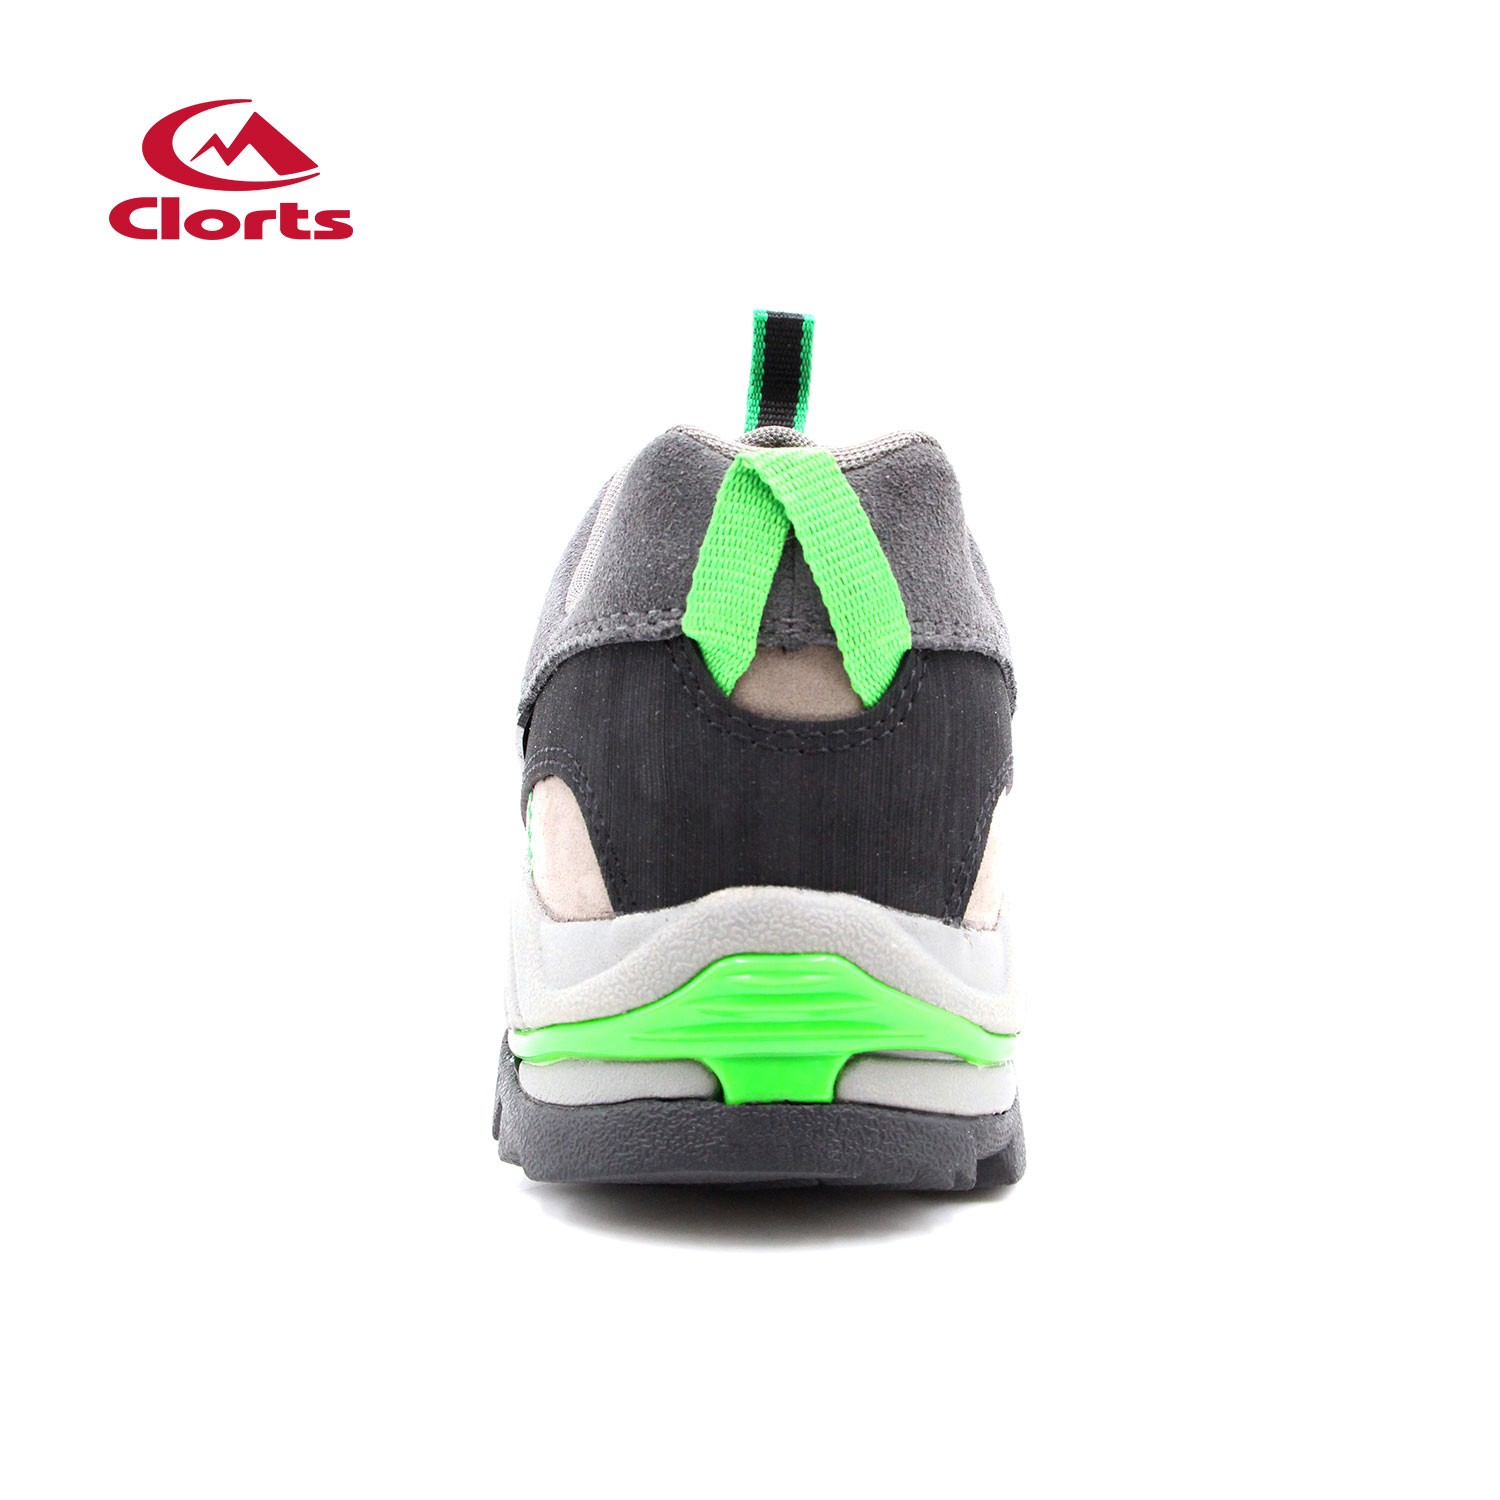 Clorts Mens Approach Shoes Grey Manufacturers, Clorts Mens Approach Shoes Grey Factory, Supply Clorts Mens Approach Shoes Grey